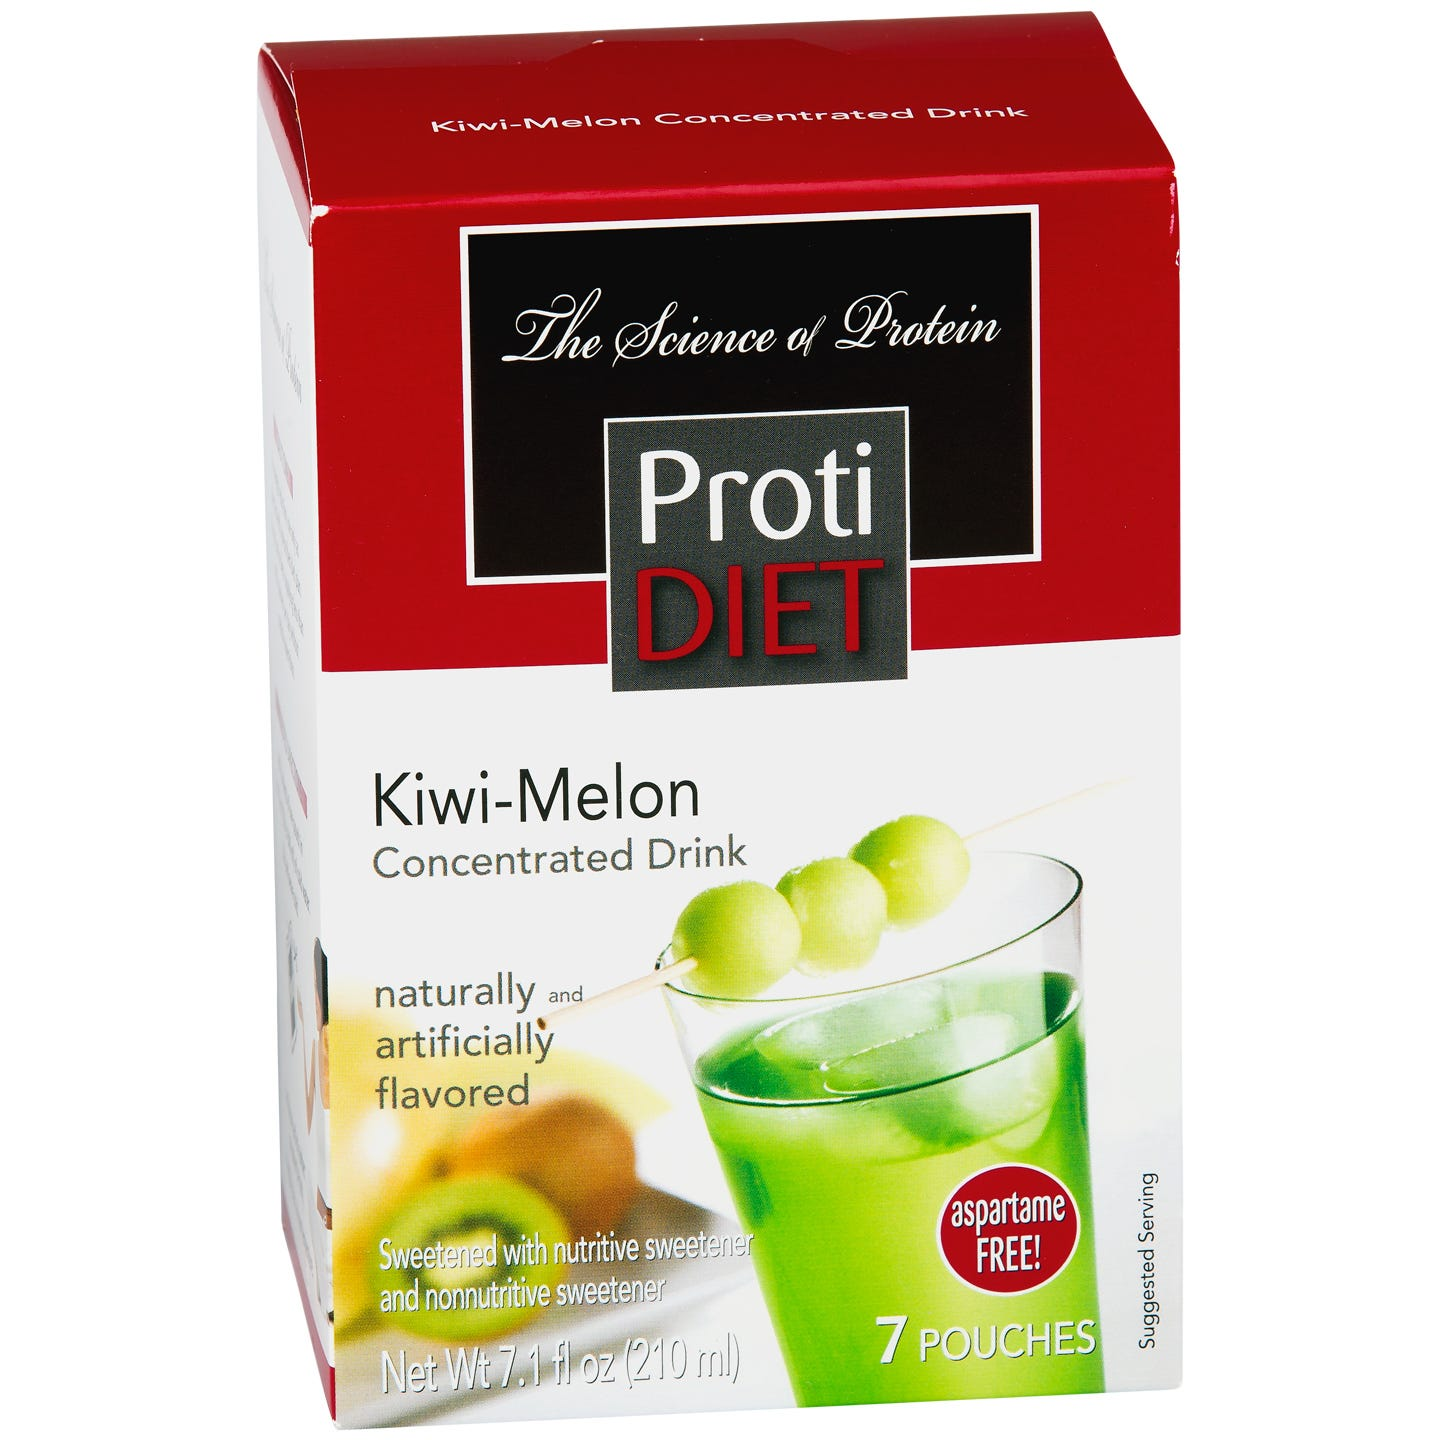 Protein Fruit Drink Concentrate Kiwi Melon (7 ct) - ProtiDiet - Rapid Diet Weight Loss Products Shop